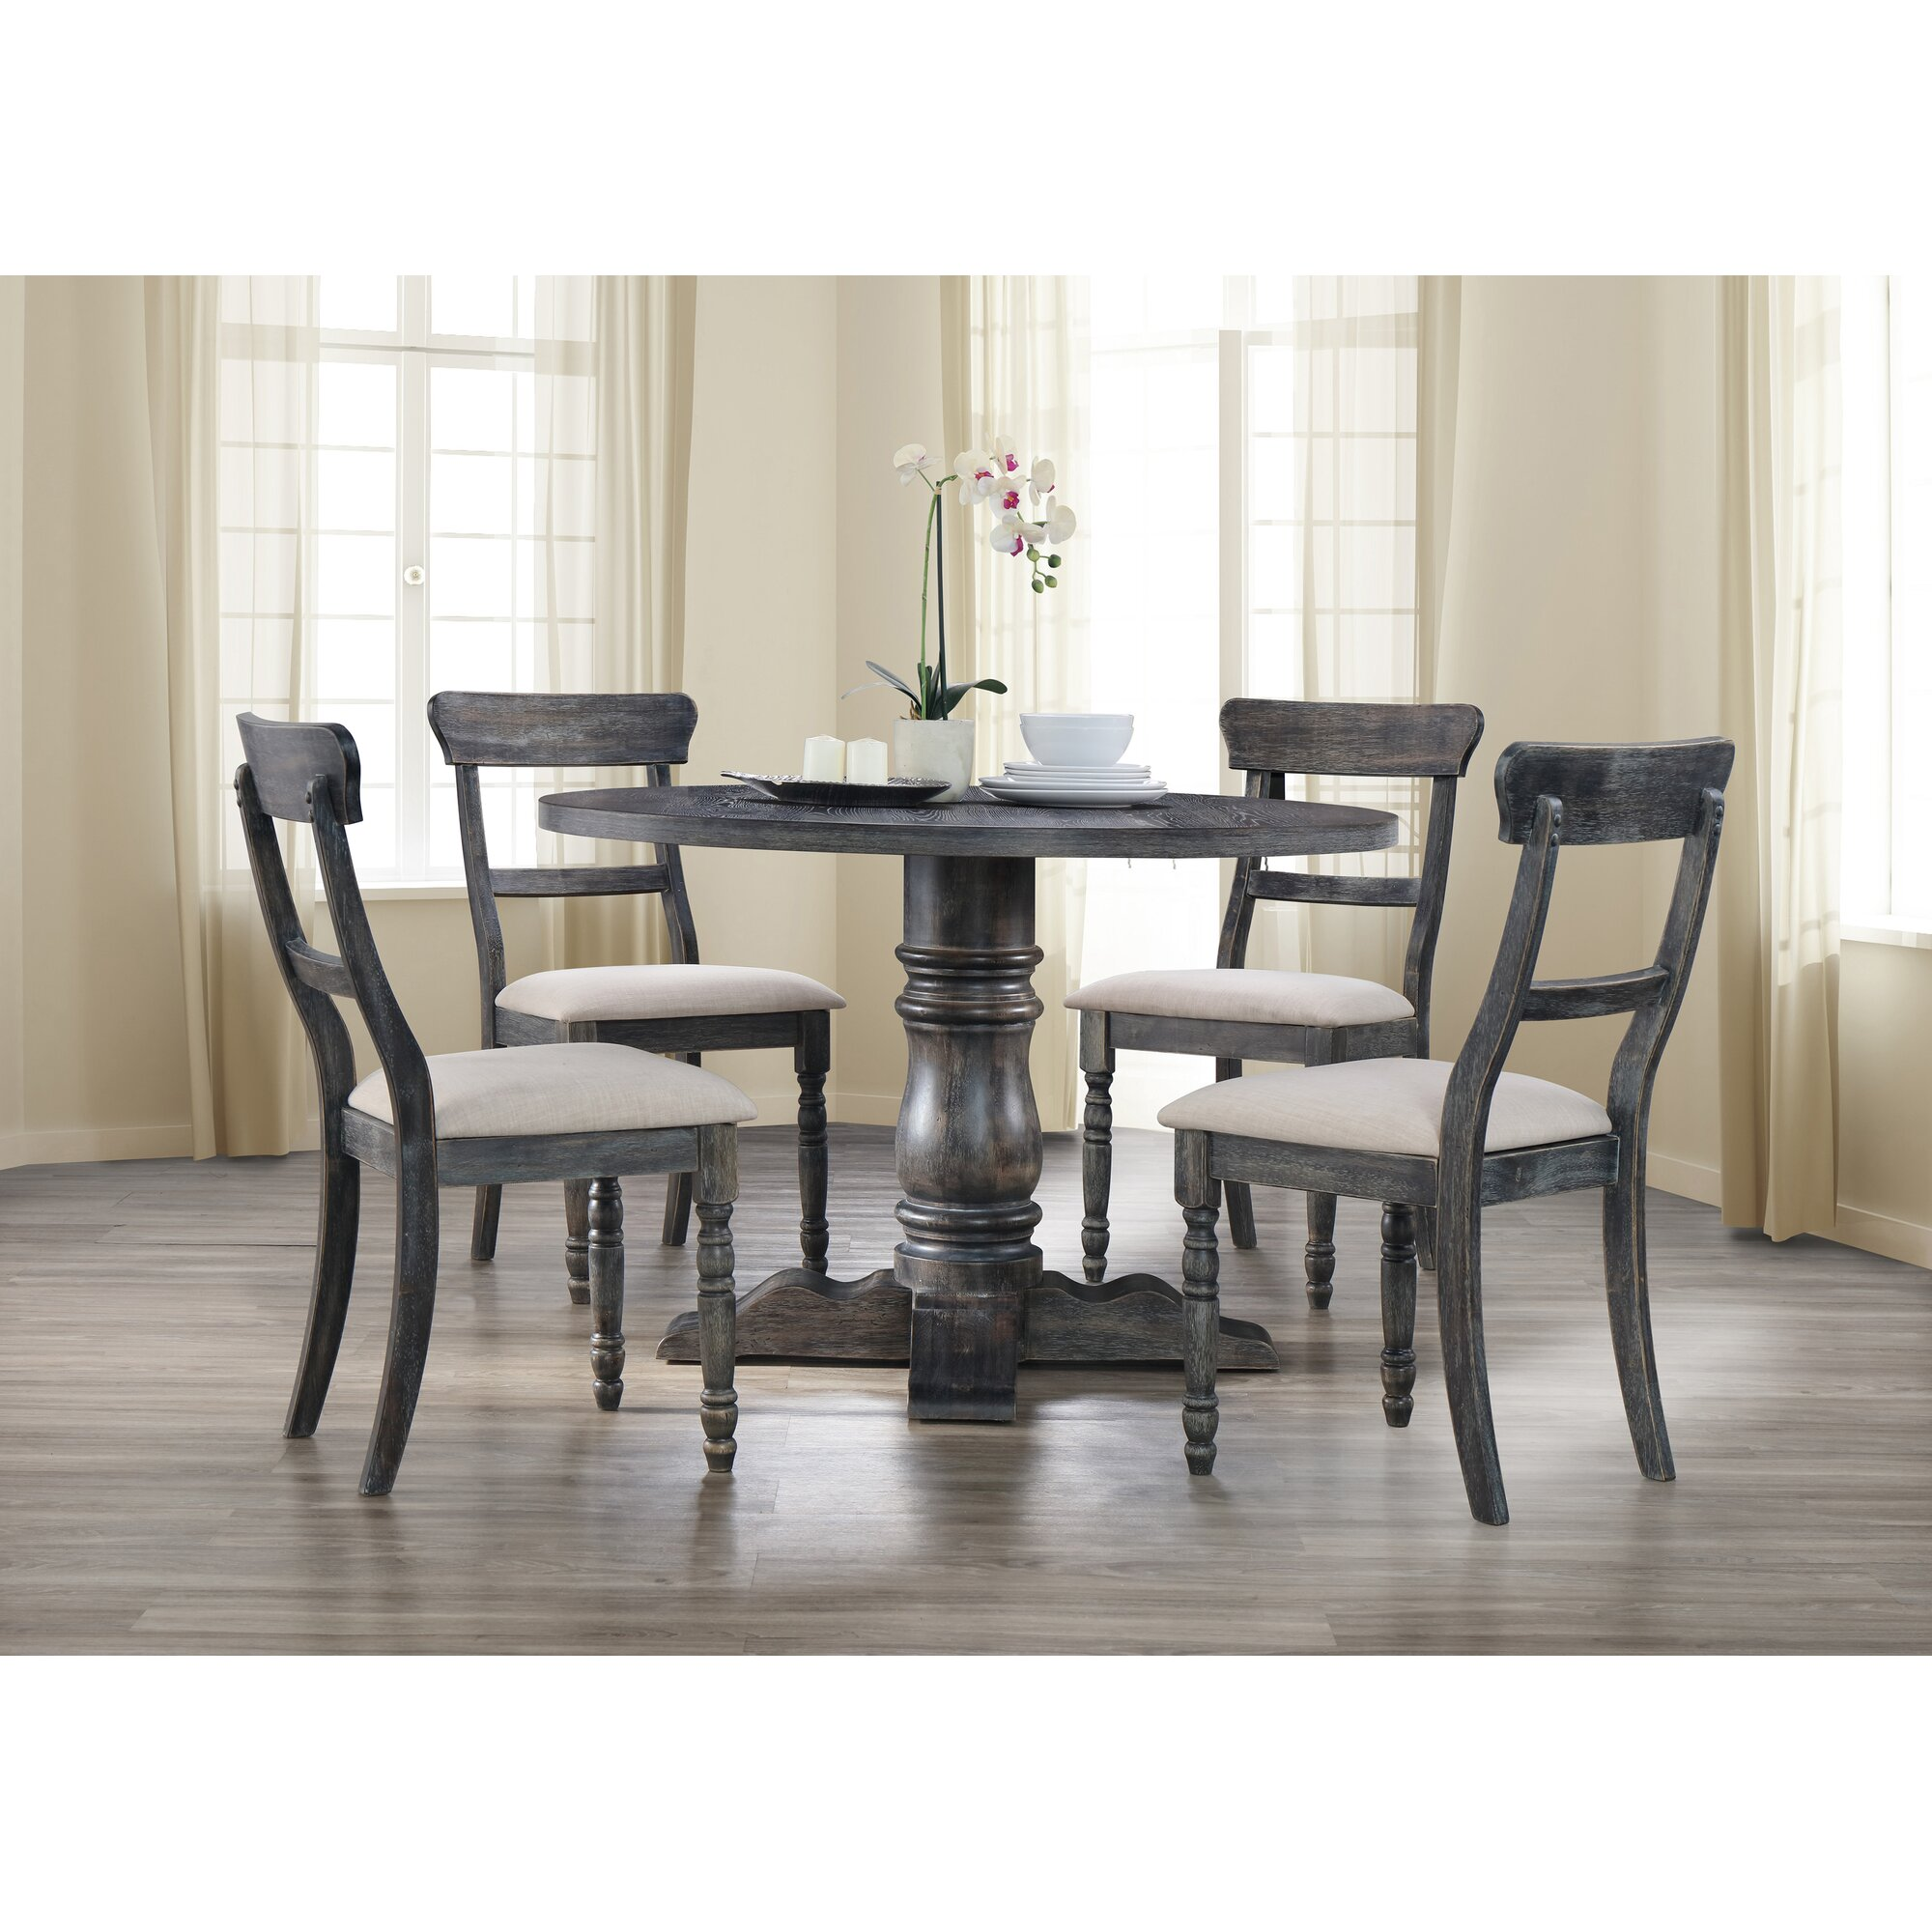 5 Chair Dining Set: BestMasterFurniture Selena 5 Piece Dining Set & Reviews